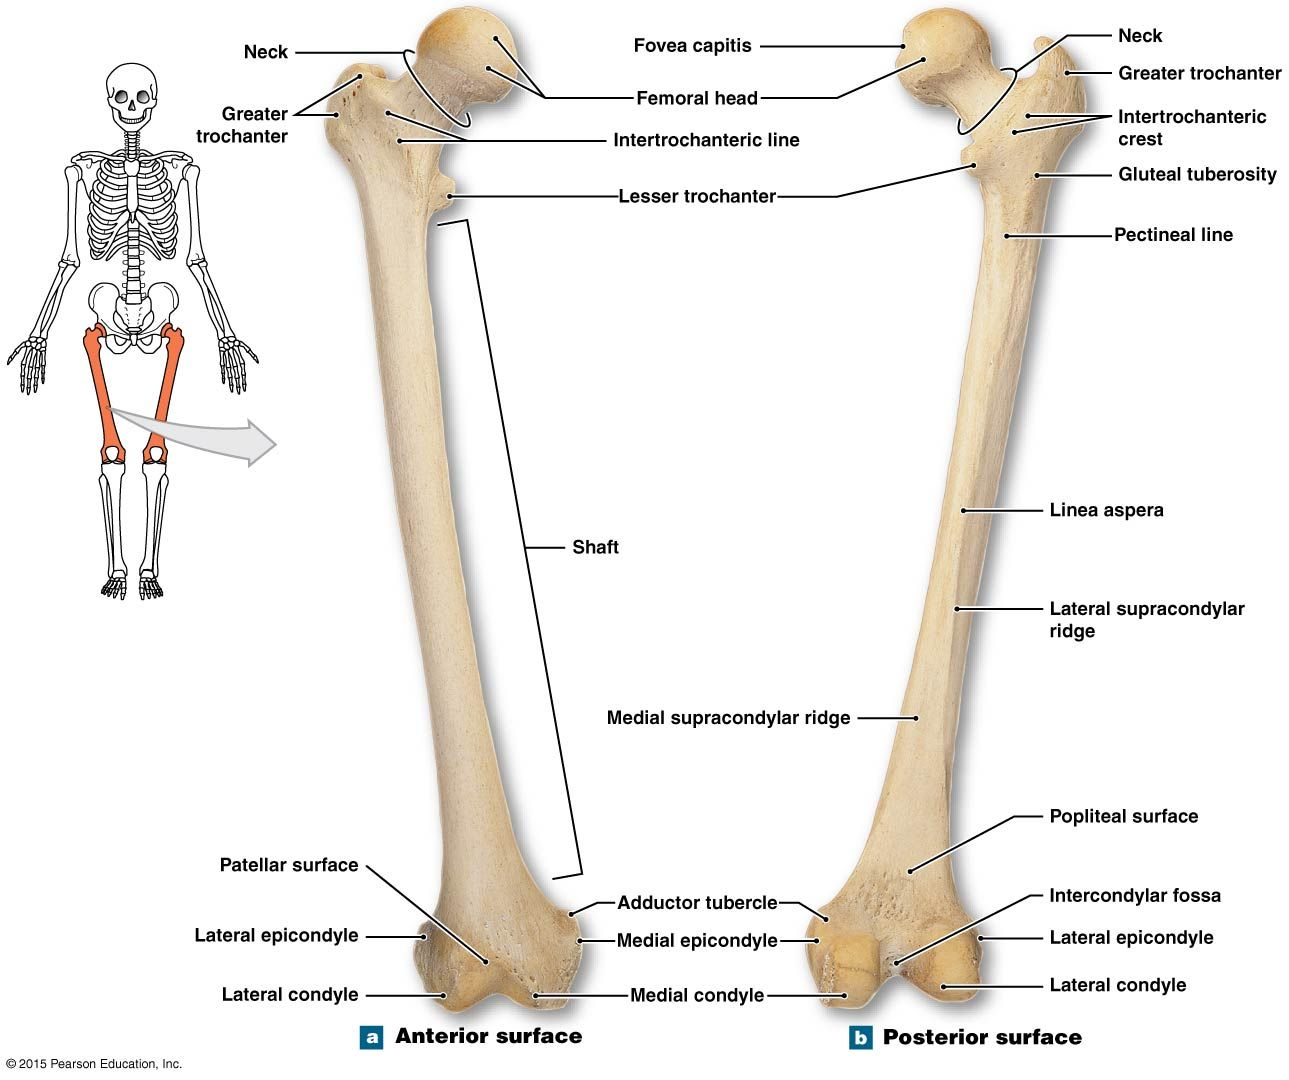 bone markings on the right femur ulna bone skeleton system radius and ulna [ 1289 x 1080 Pixel ]